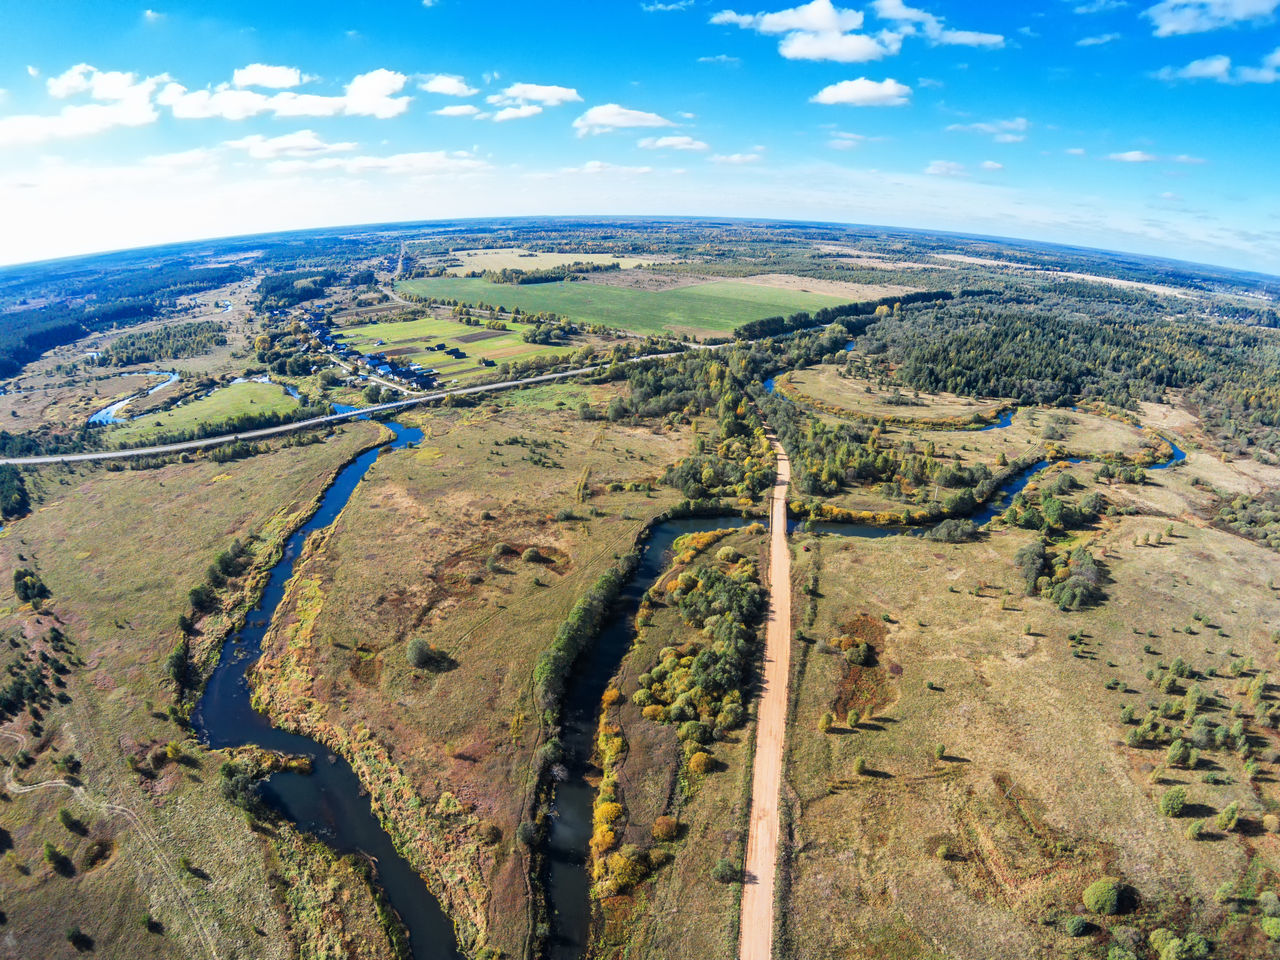 Vorozhba River flows into the river Volchina A Bird's Eye View Aerial Aerial View Beauty In Nature Blue Cloud - Sky Drone  Dronephotography Grass Growth Landscape Nature No People Outdoors River Scenics Sky Top Perspective